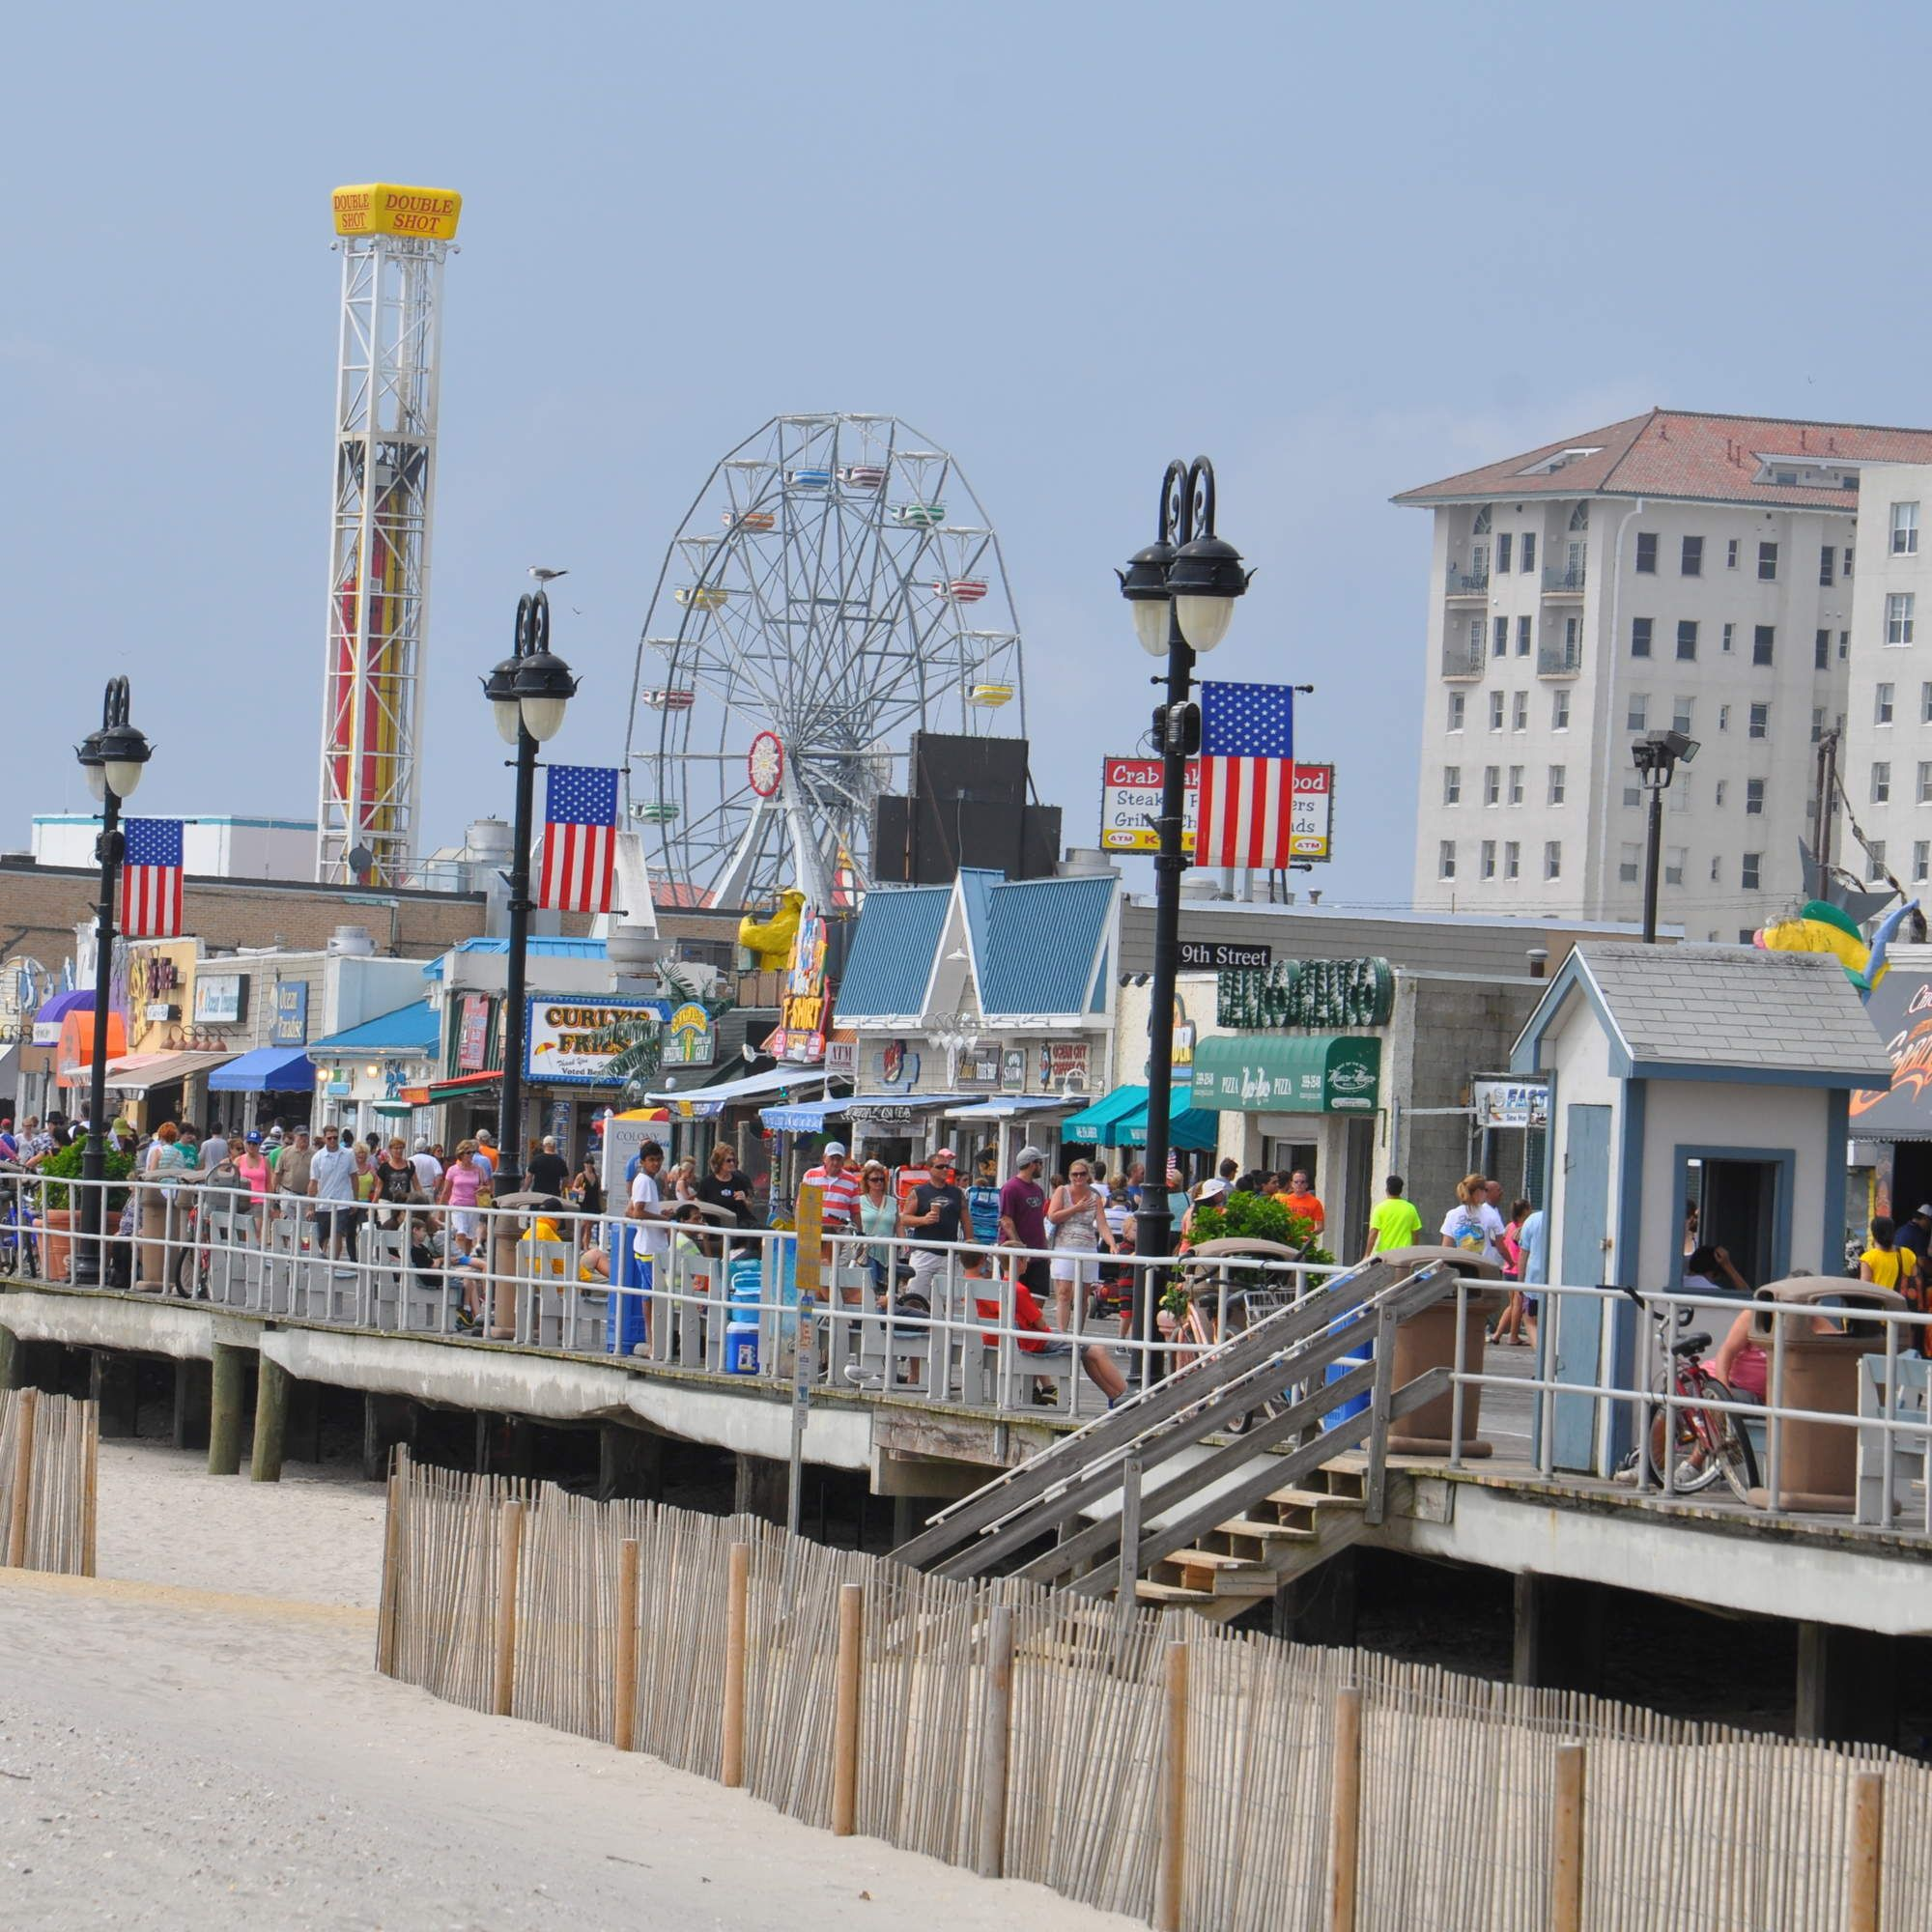 Lbi Nj: Every Major Jersey Shore Beach Town, Ranked